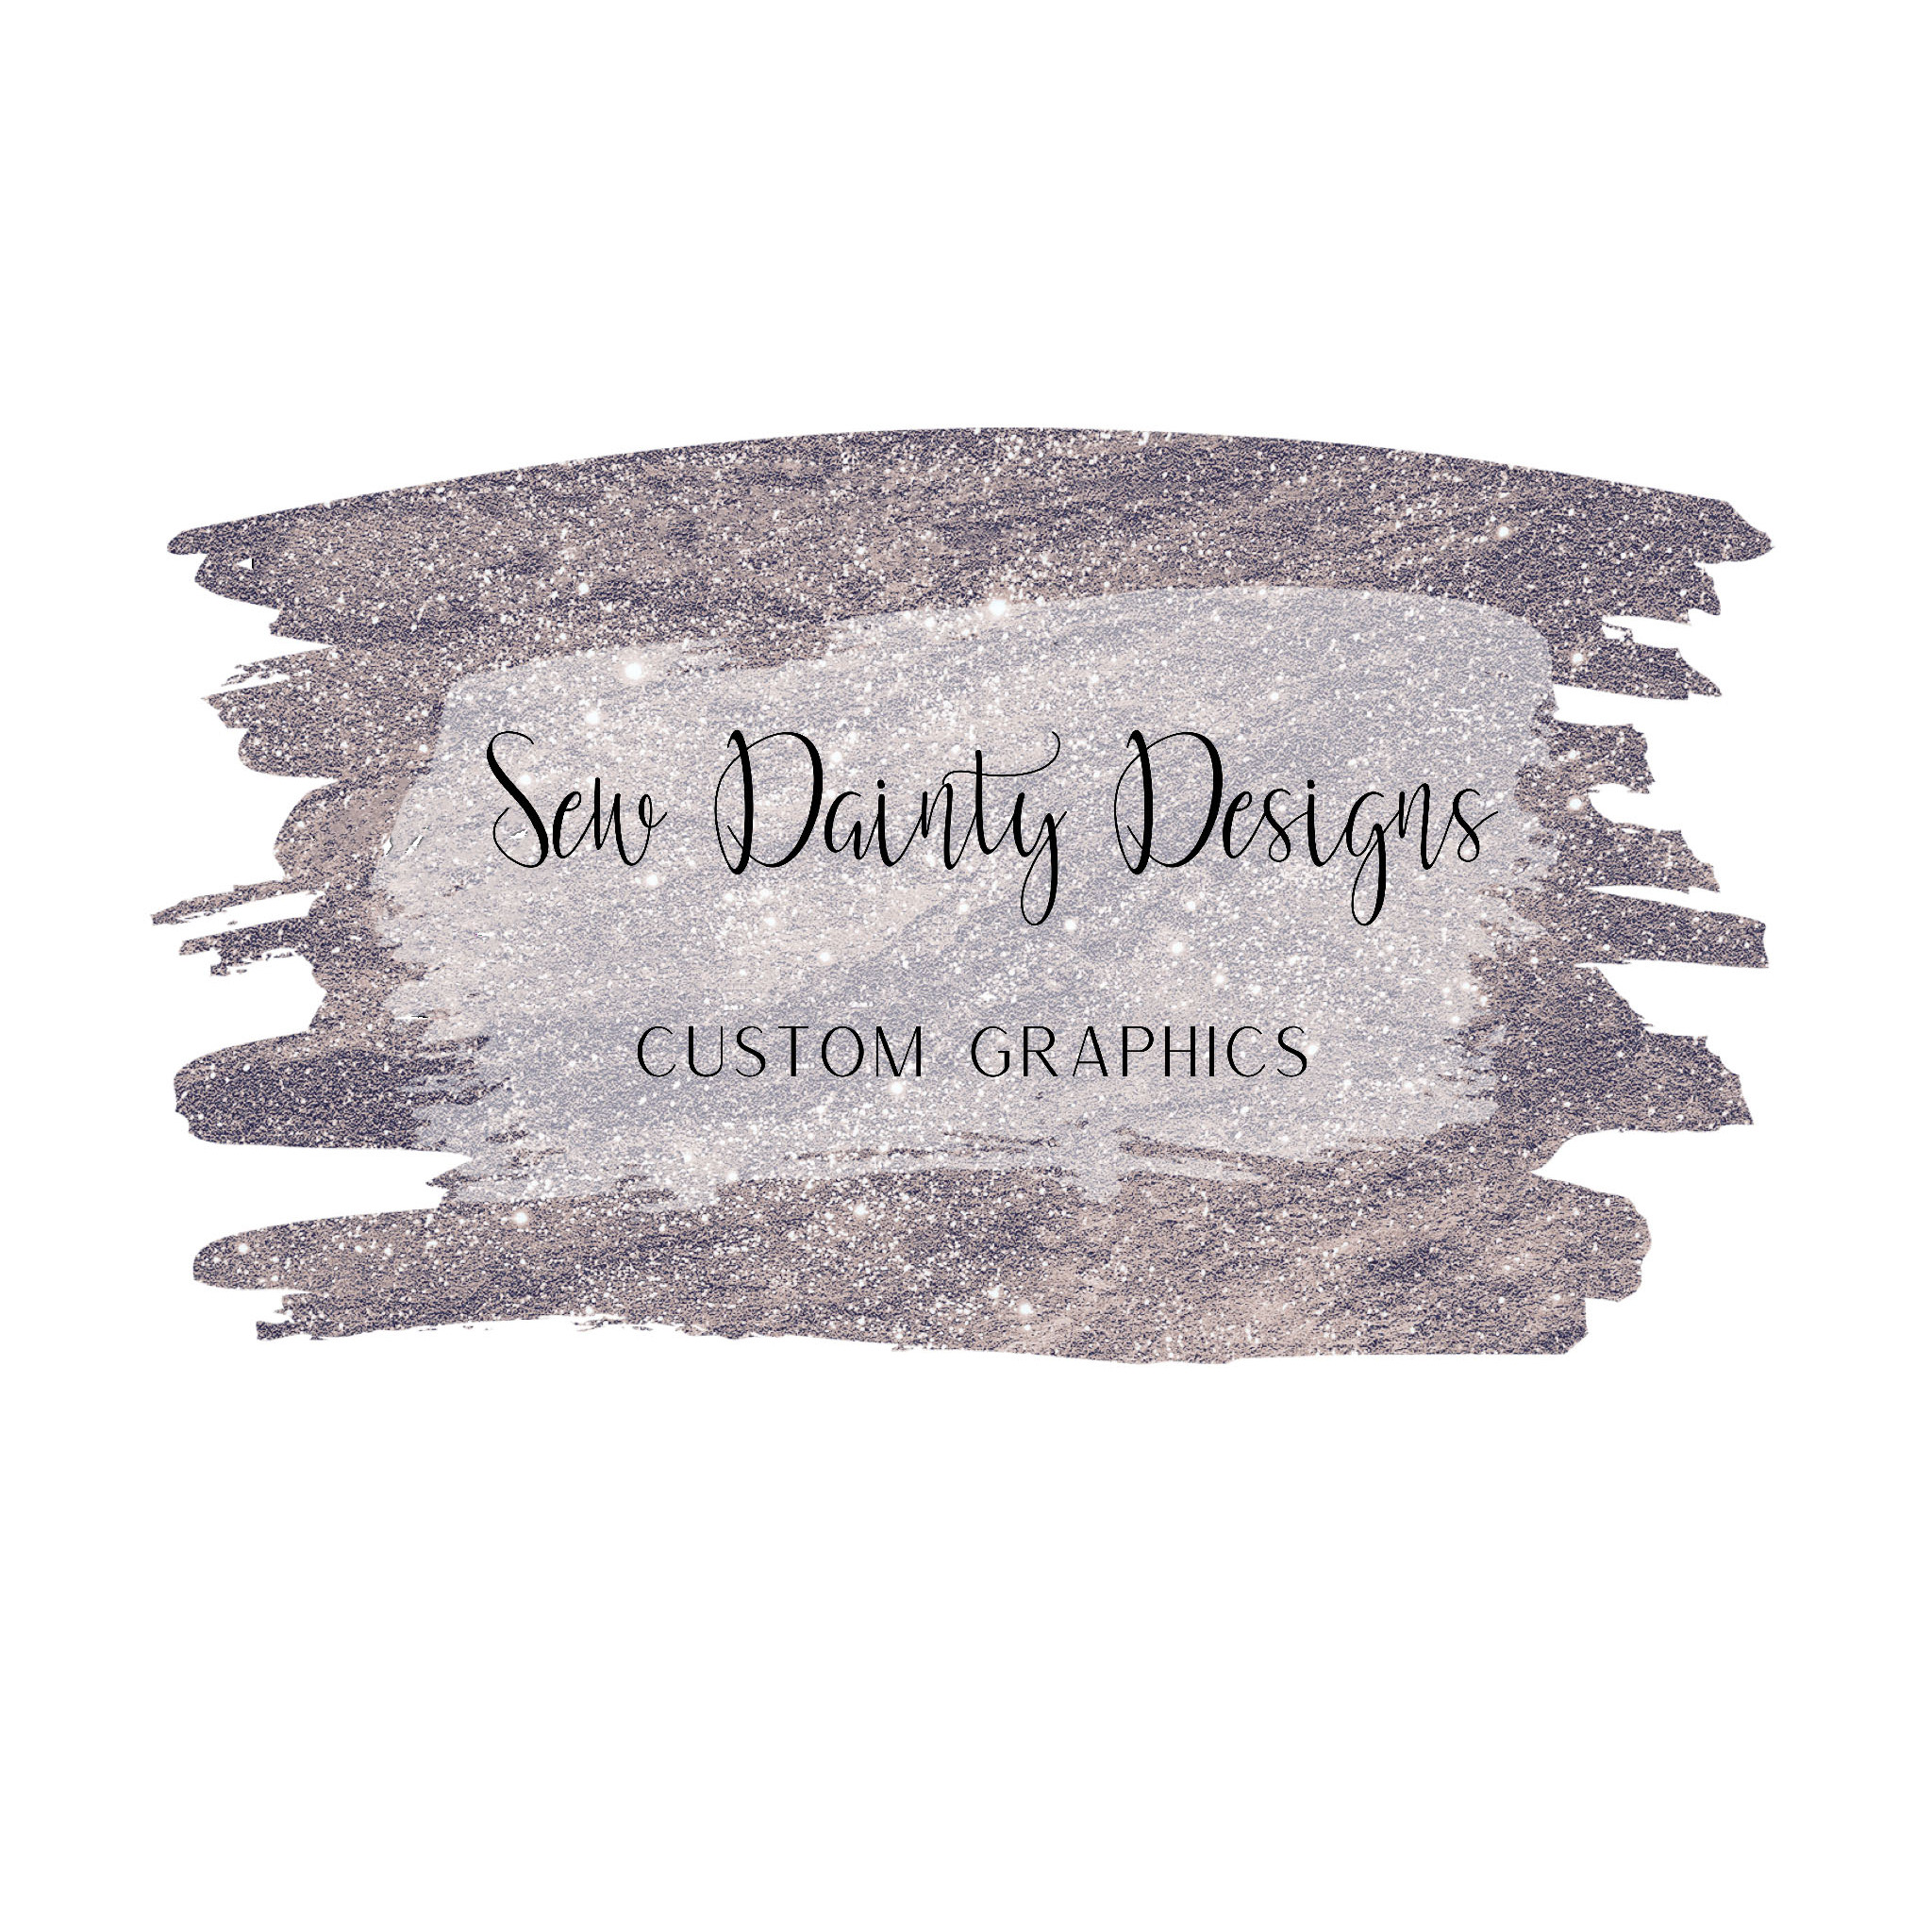 Sew Dainty Designs Graphics's profile picture